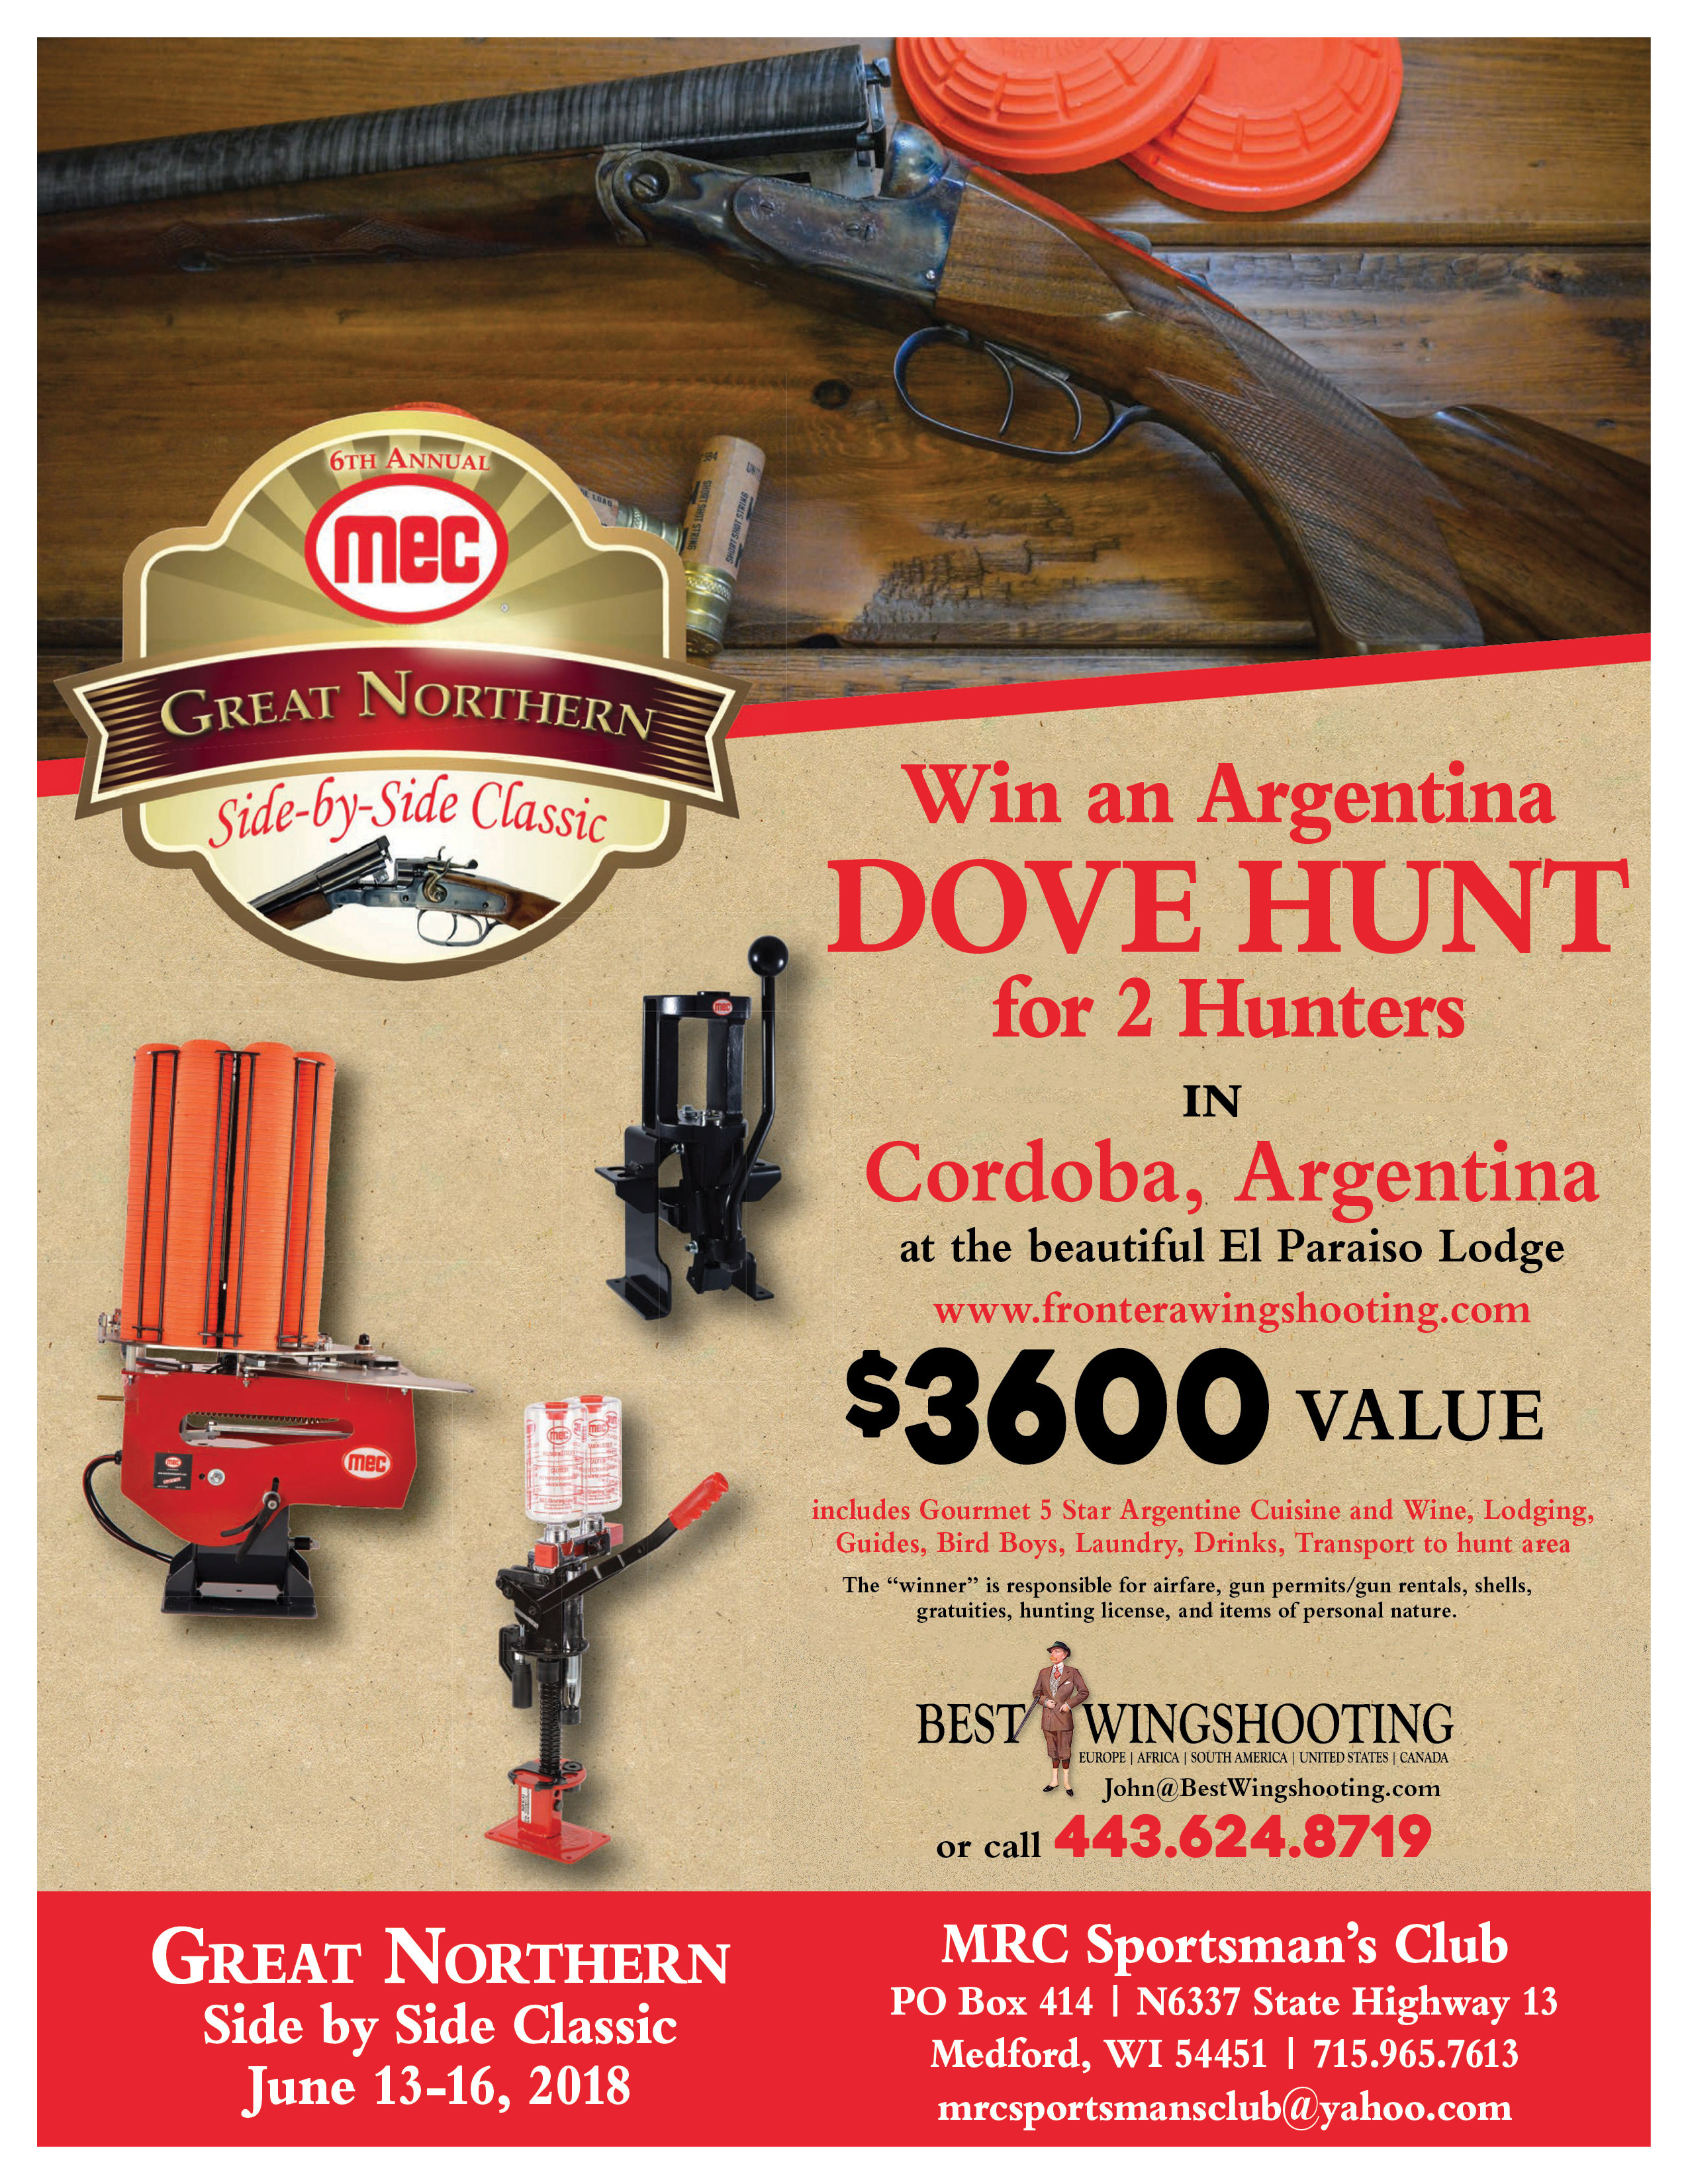 win-argentina-dove-hunt-for-2